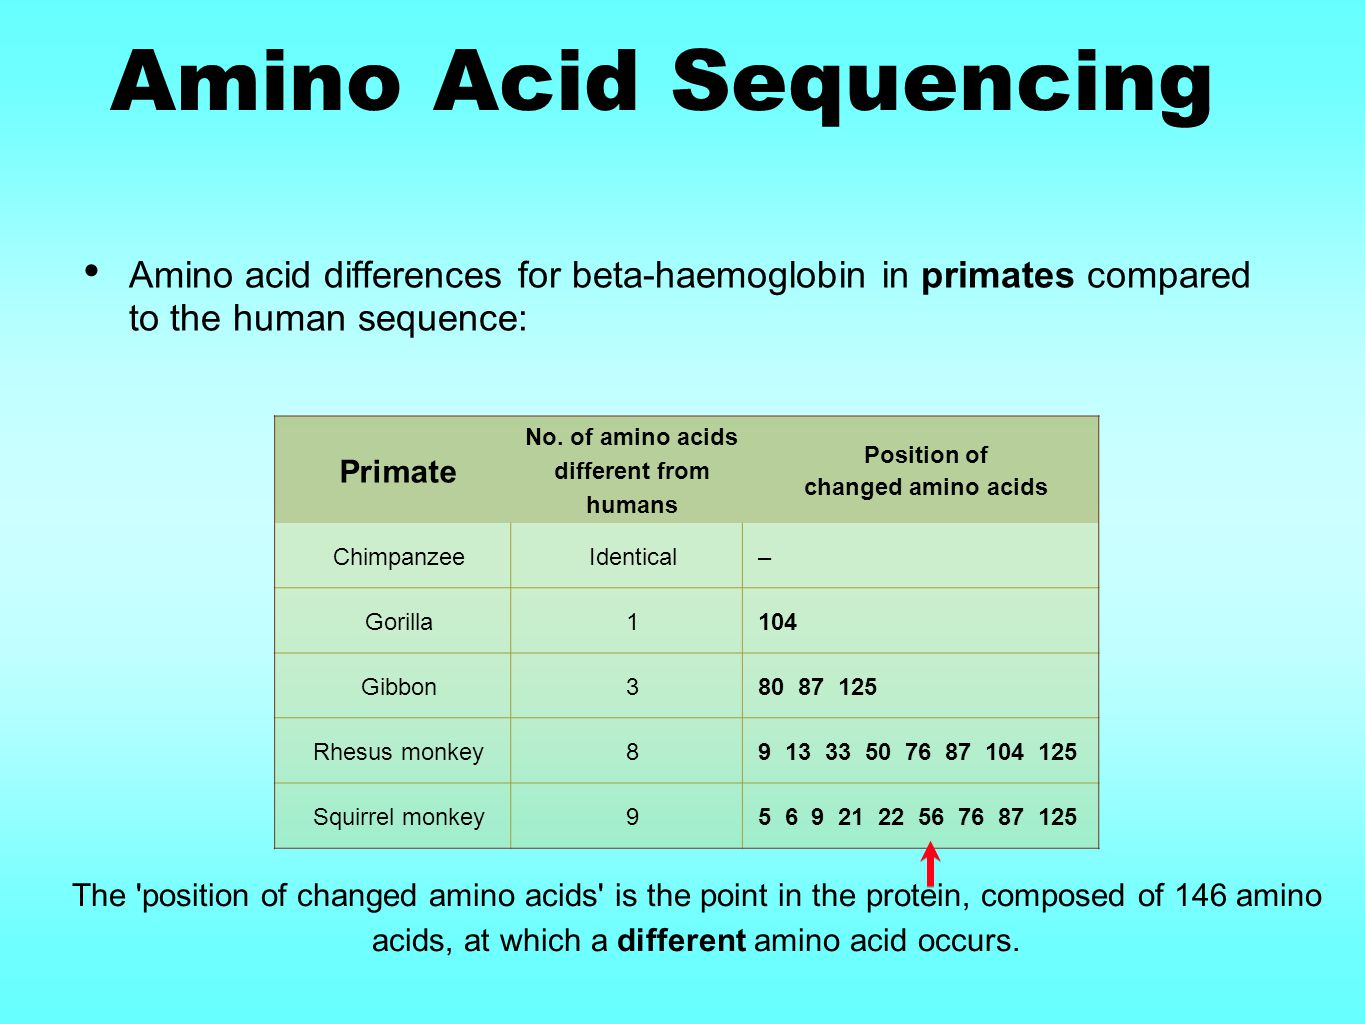 No. of amino acids different from humans